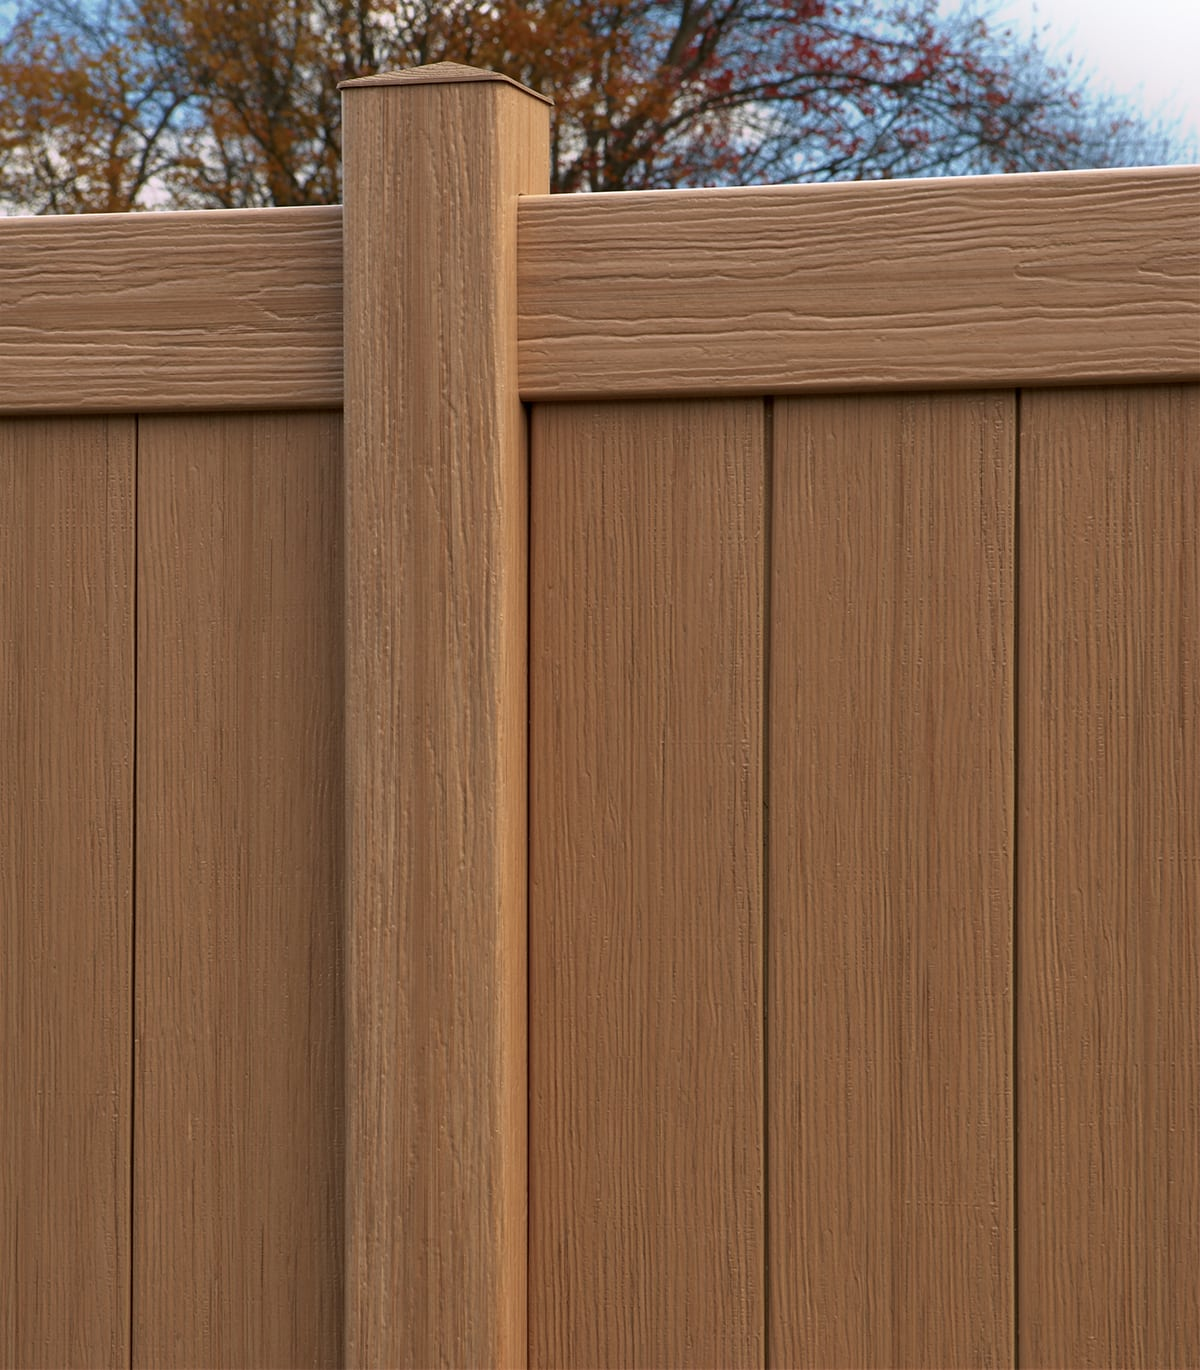 Bufftech Chesterfield Vinyl Fence With Certagrain Texture